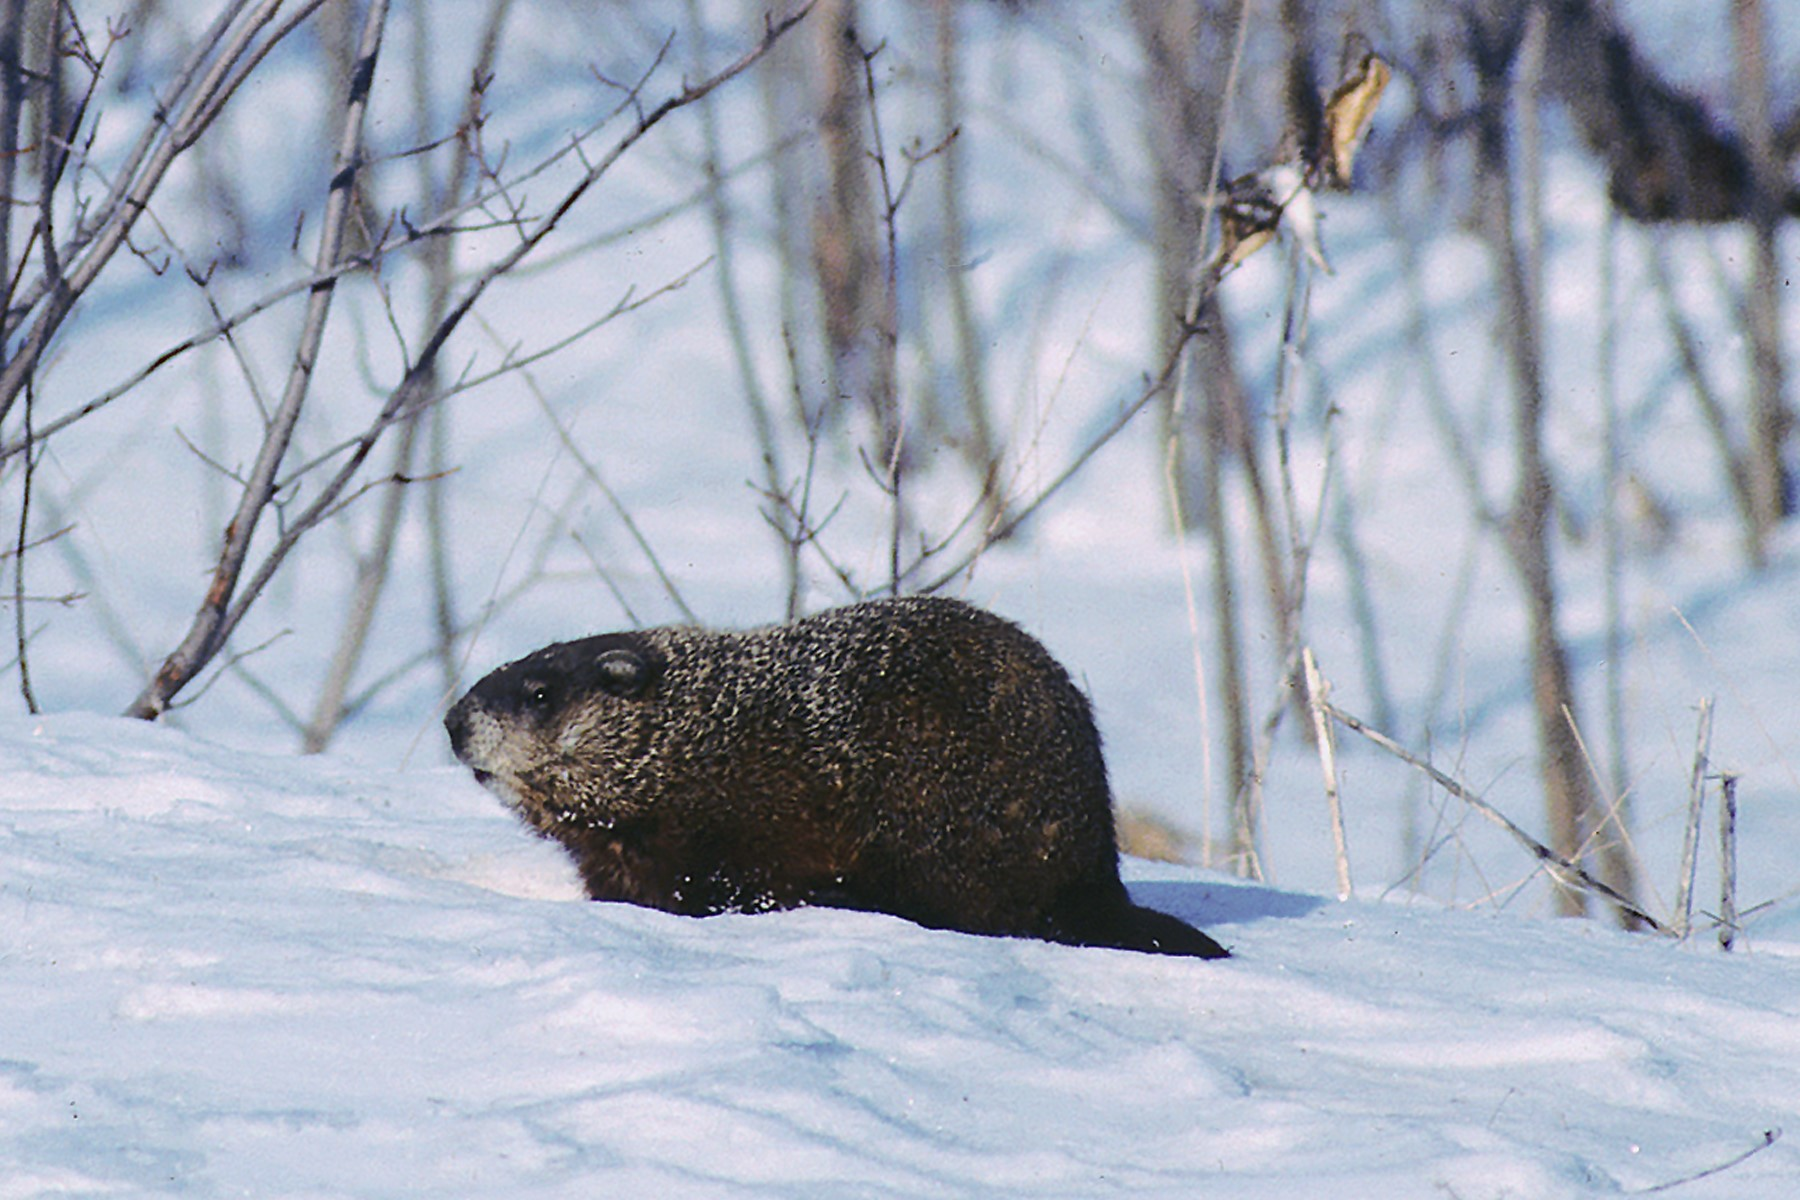 Groundhog Day is a silly excuse for a winter celebration